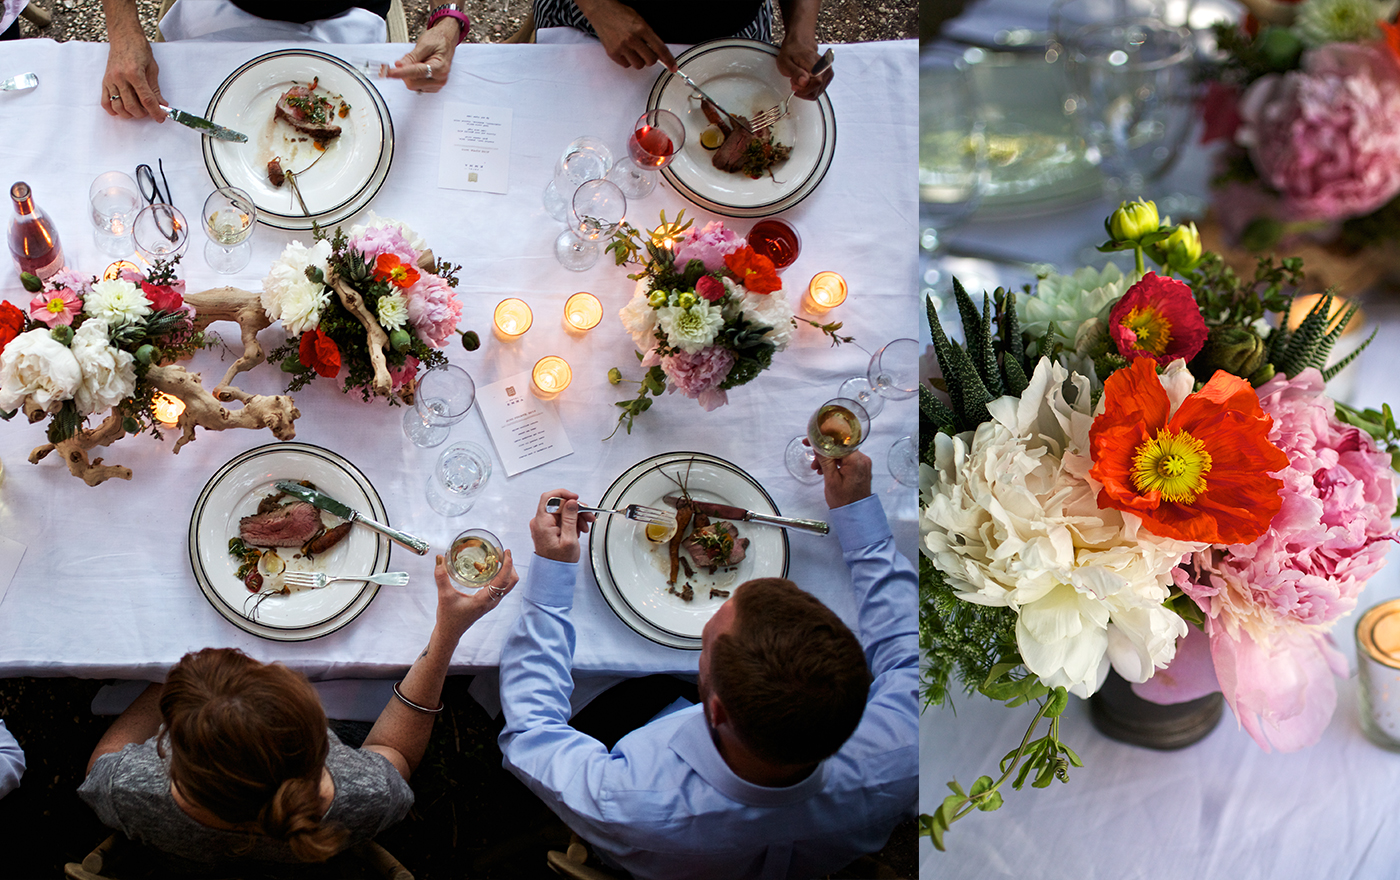 A picture of a white table decorated with two flower bouquets and four friends eating around the table.